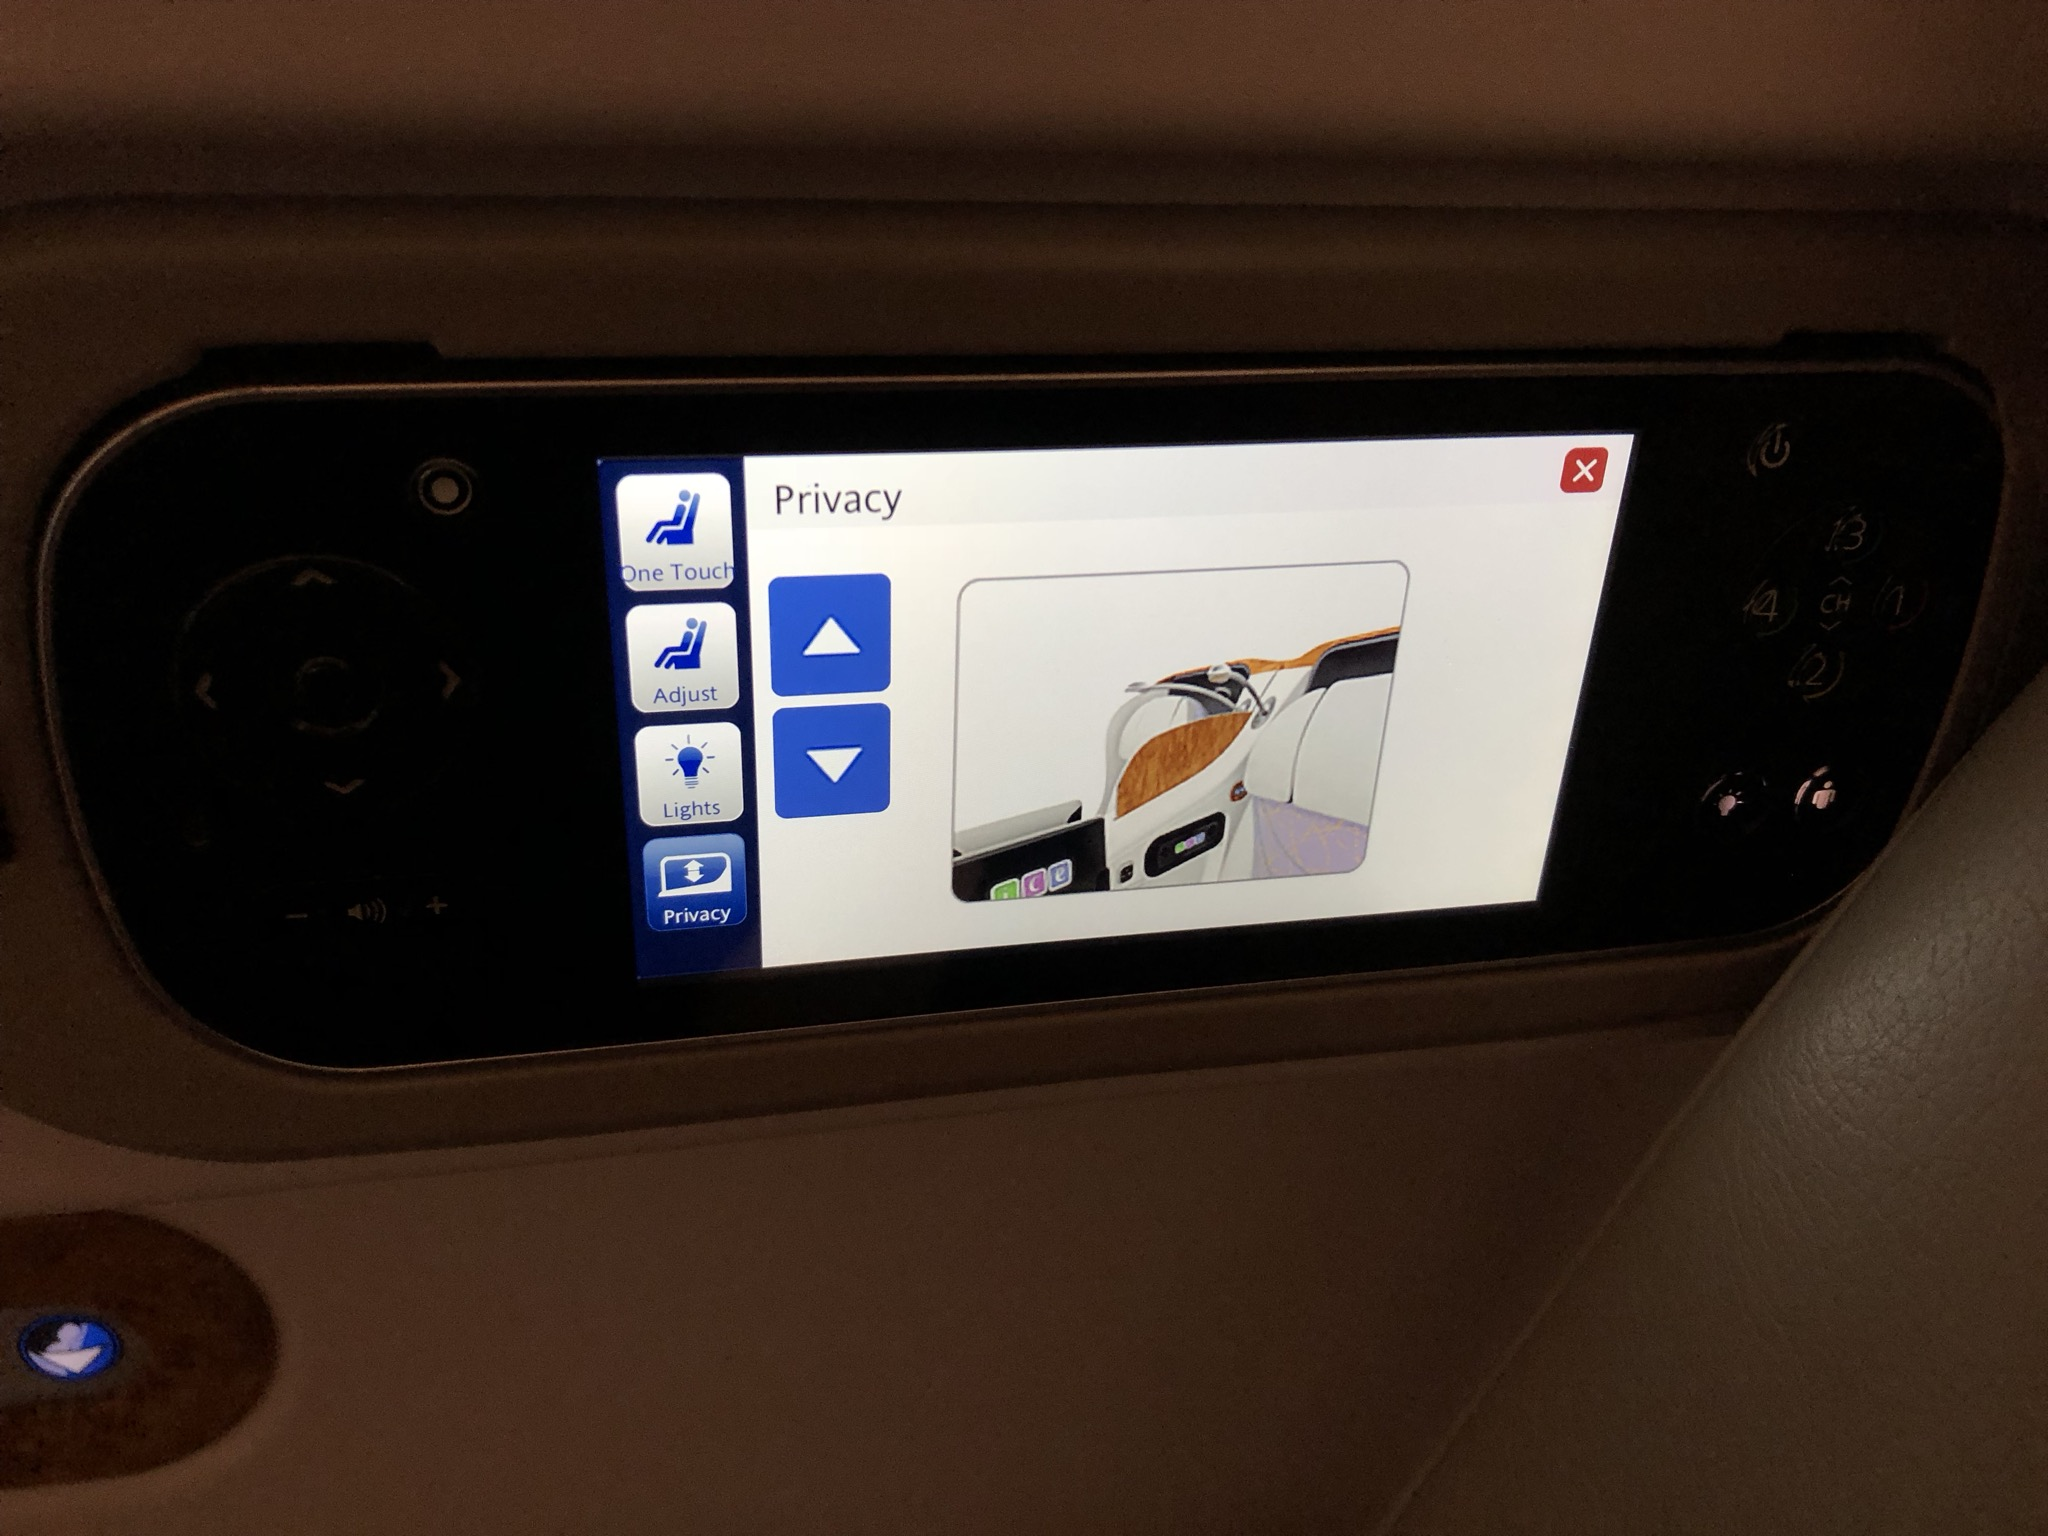 Remote control with touch screen to control seat functions and the IFE